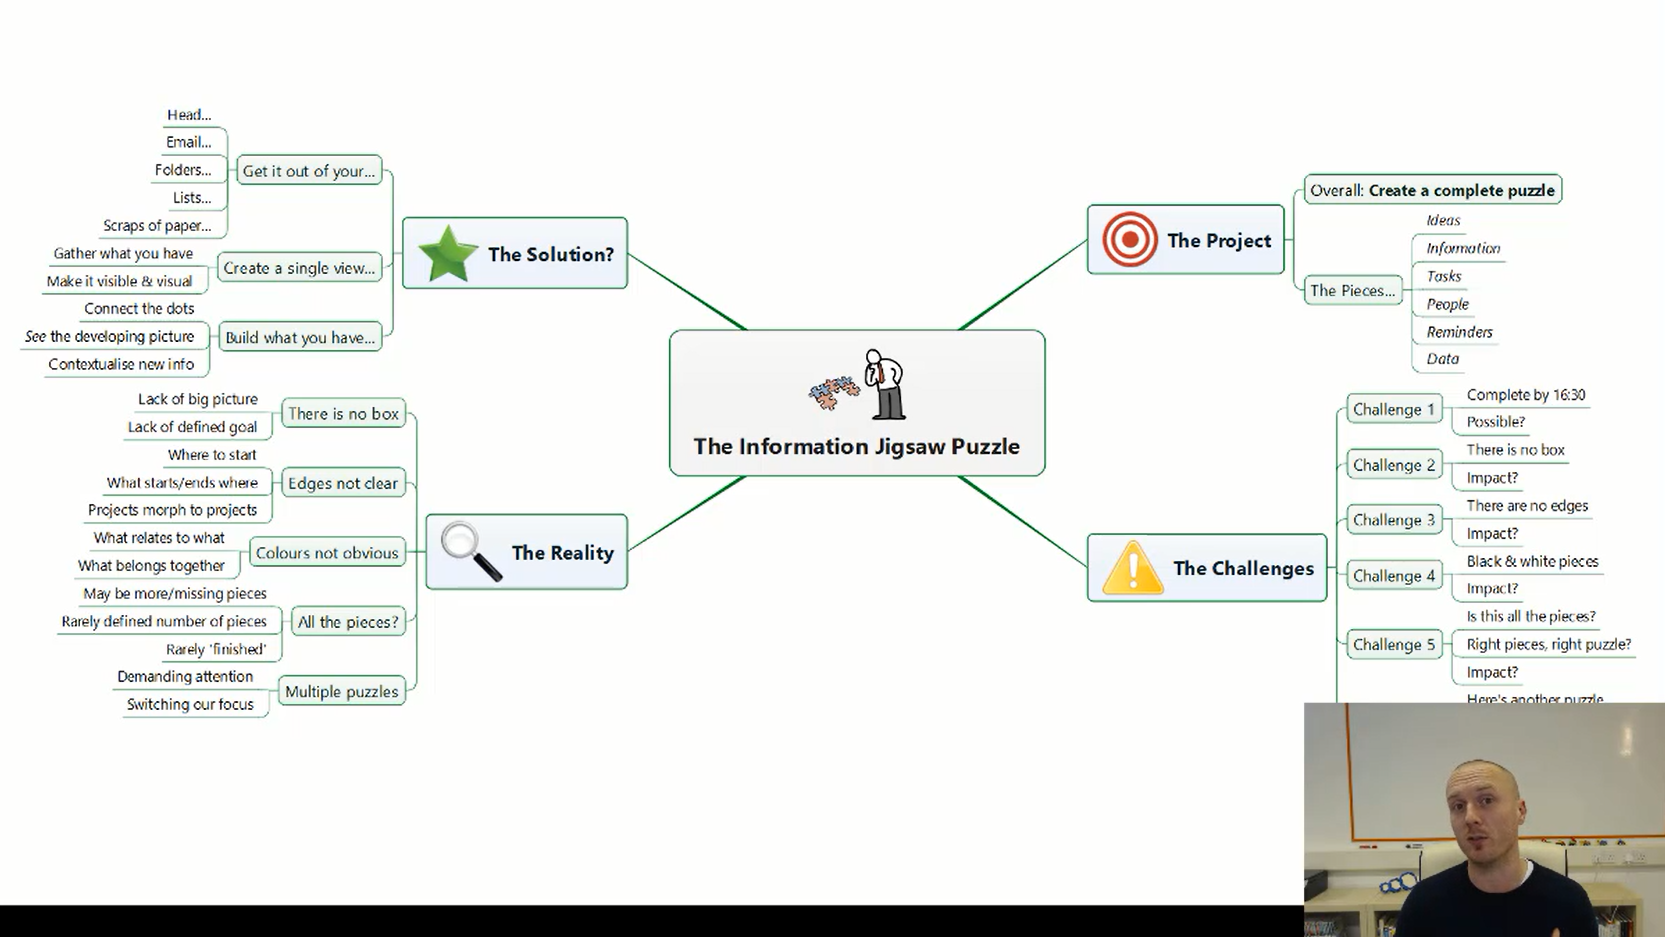 The Information Jigsaw Puzzle